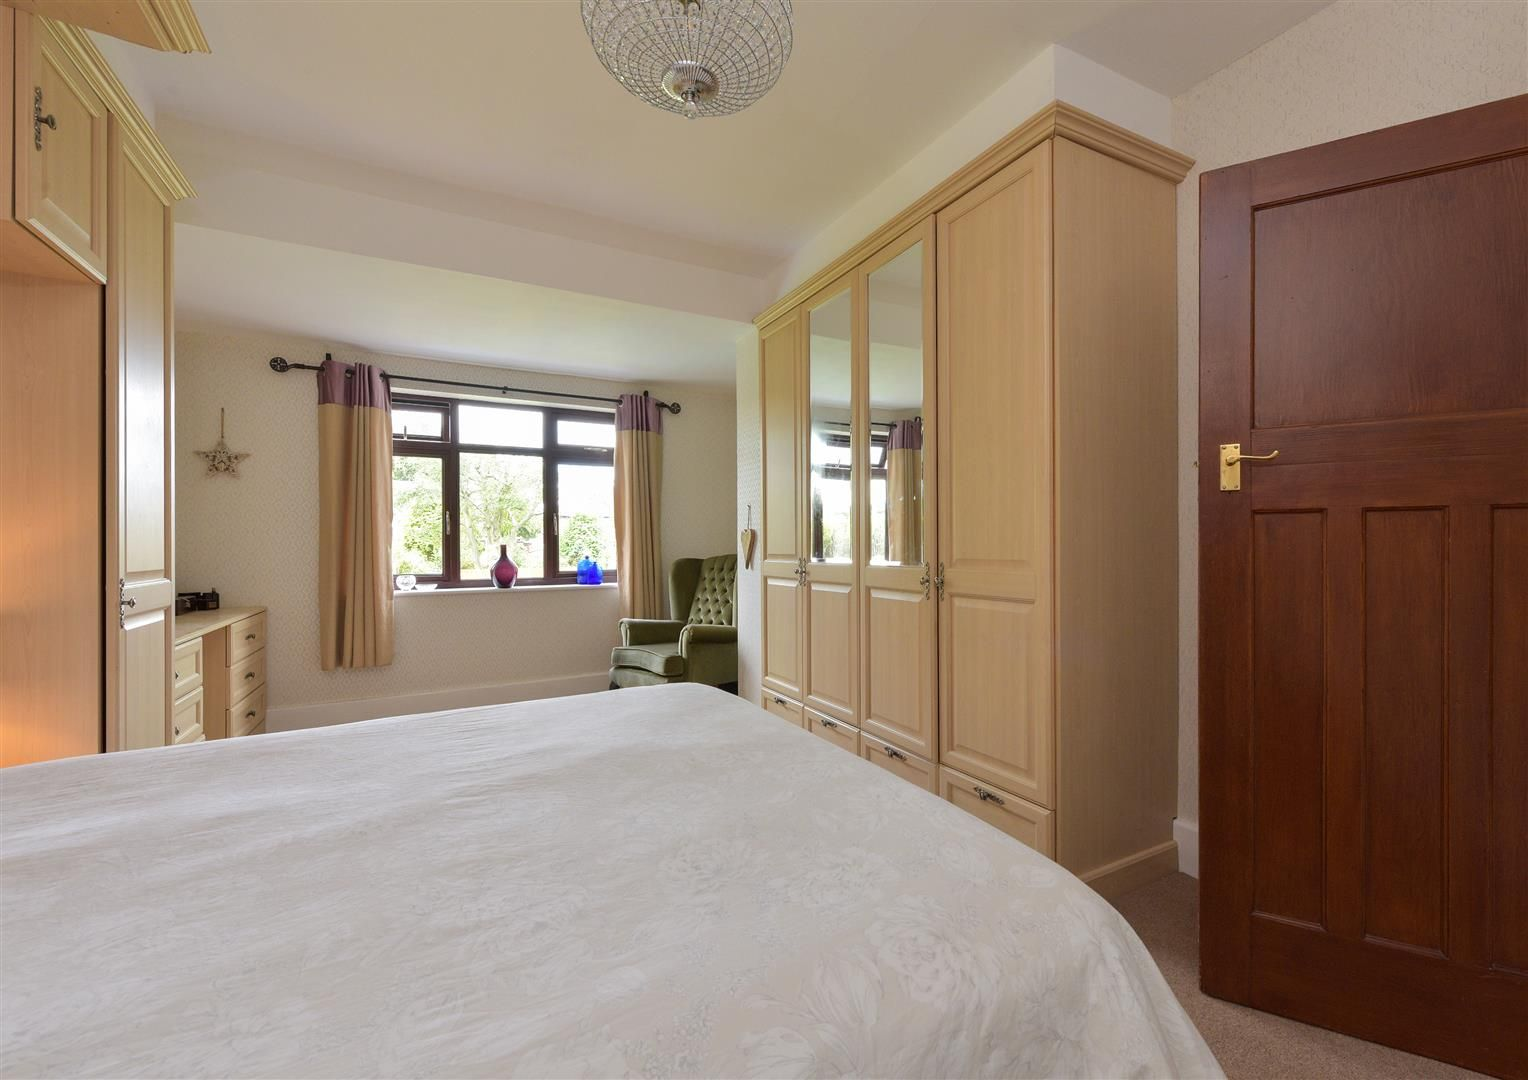 5 bed semi-detached for sale  - Property Image 13